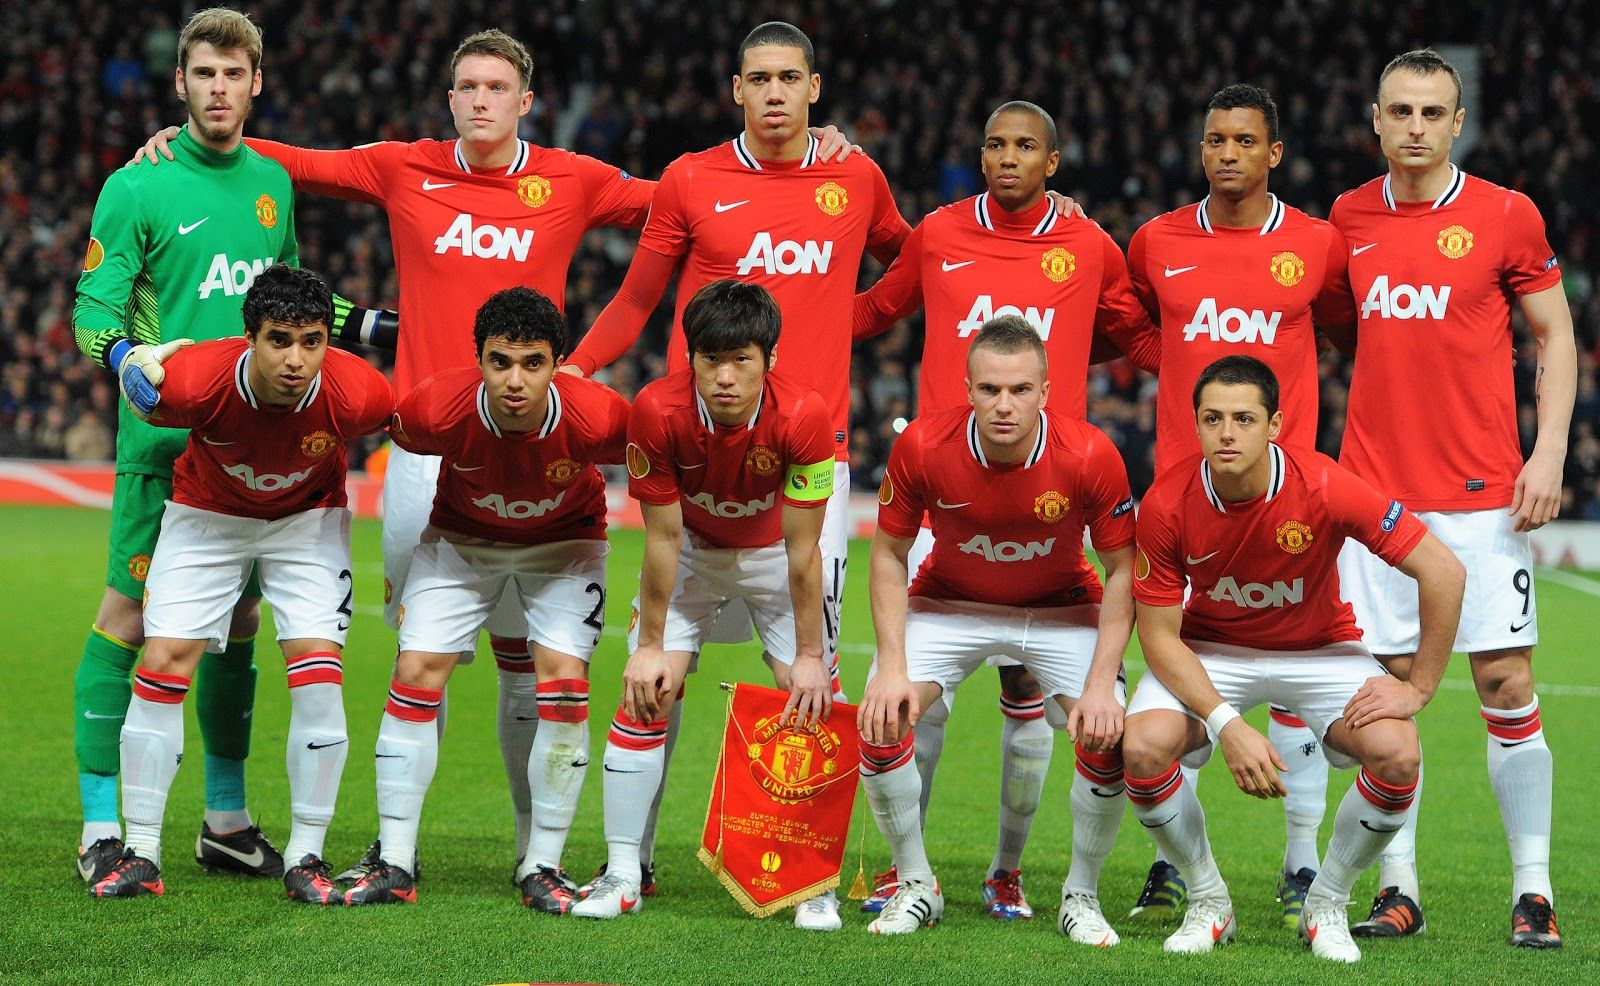 Football Young Stars Manchester United Players Wallpapers